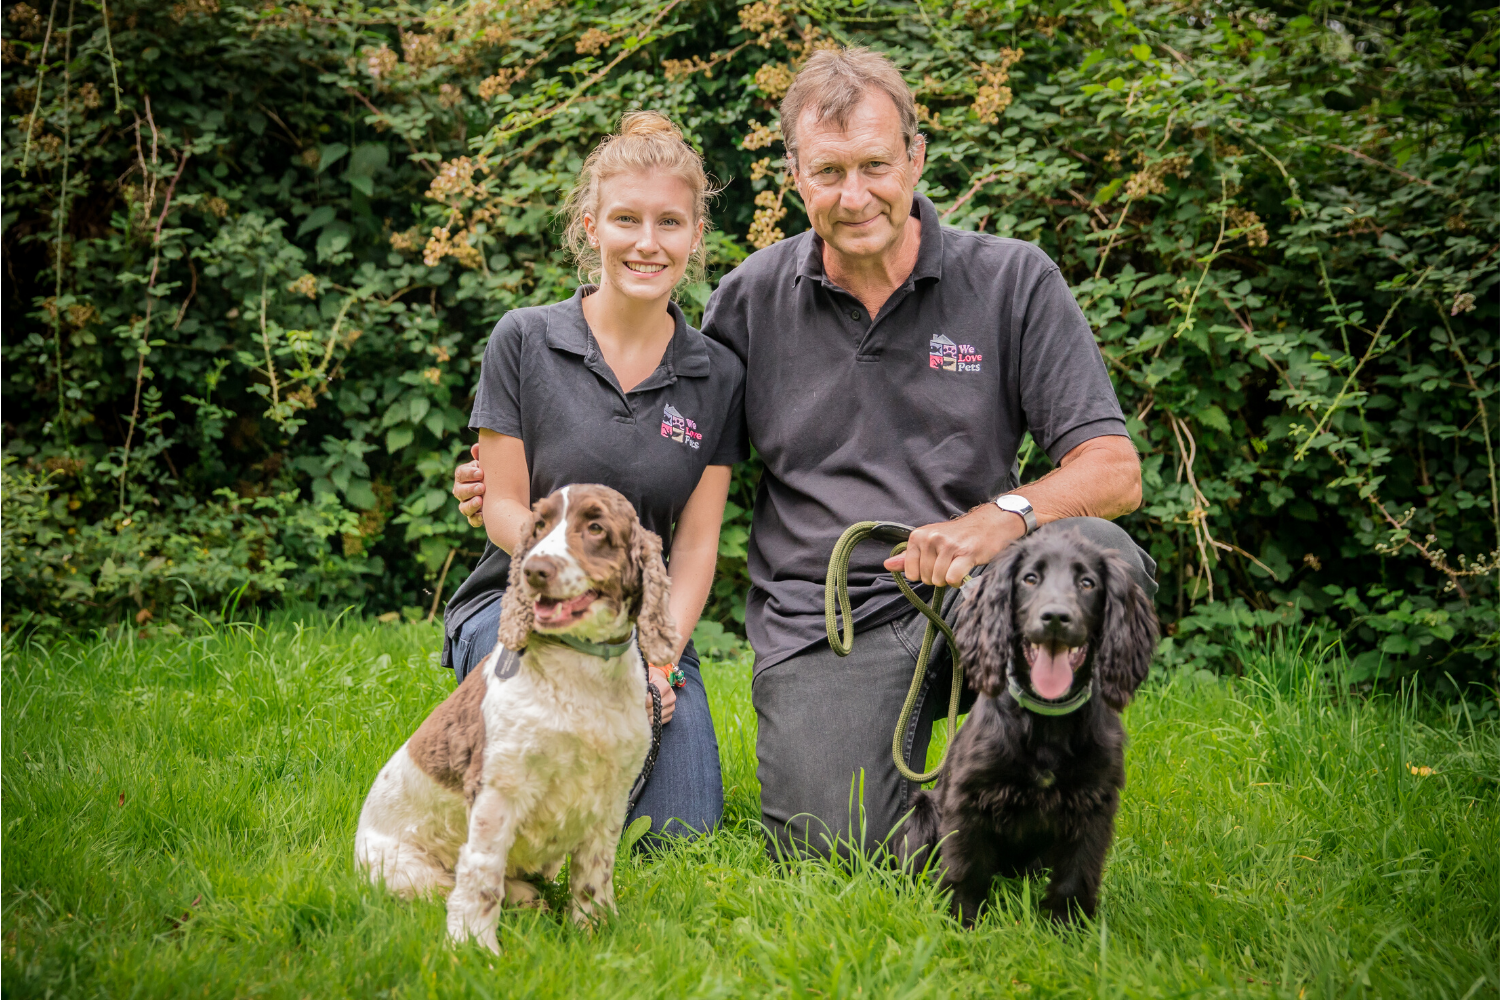 Dog walker and pet sitter in Royal Wootton Bassett. Your pet is in safe hands at We Love Pets.